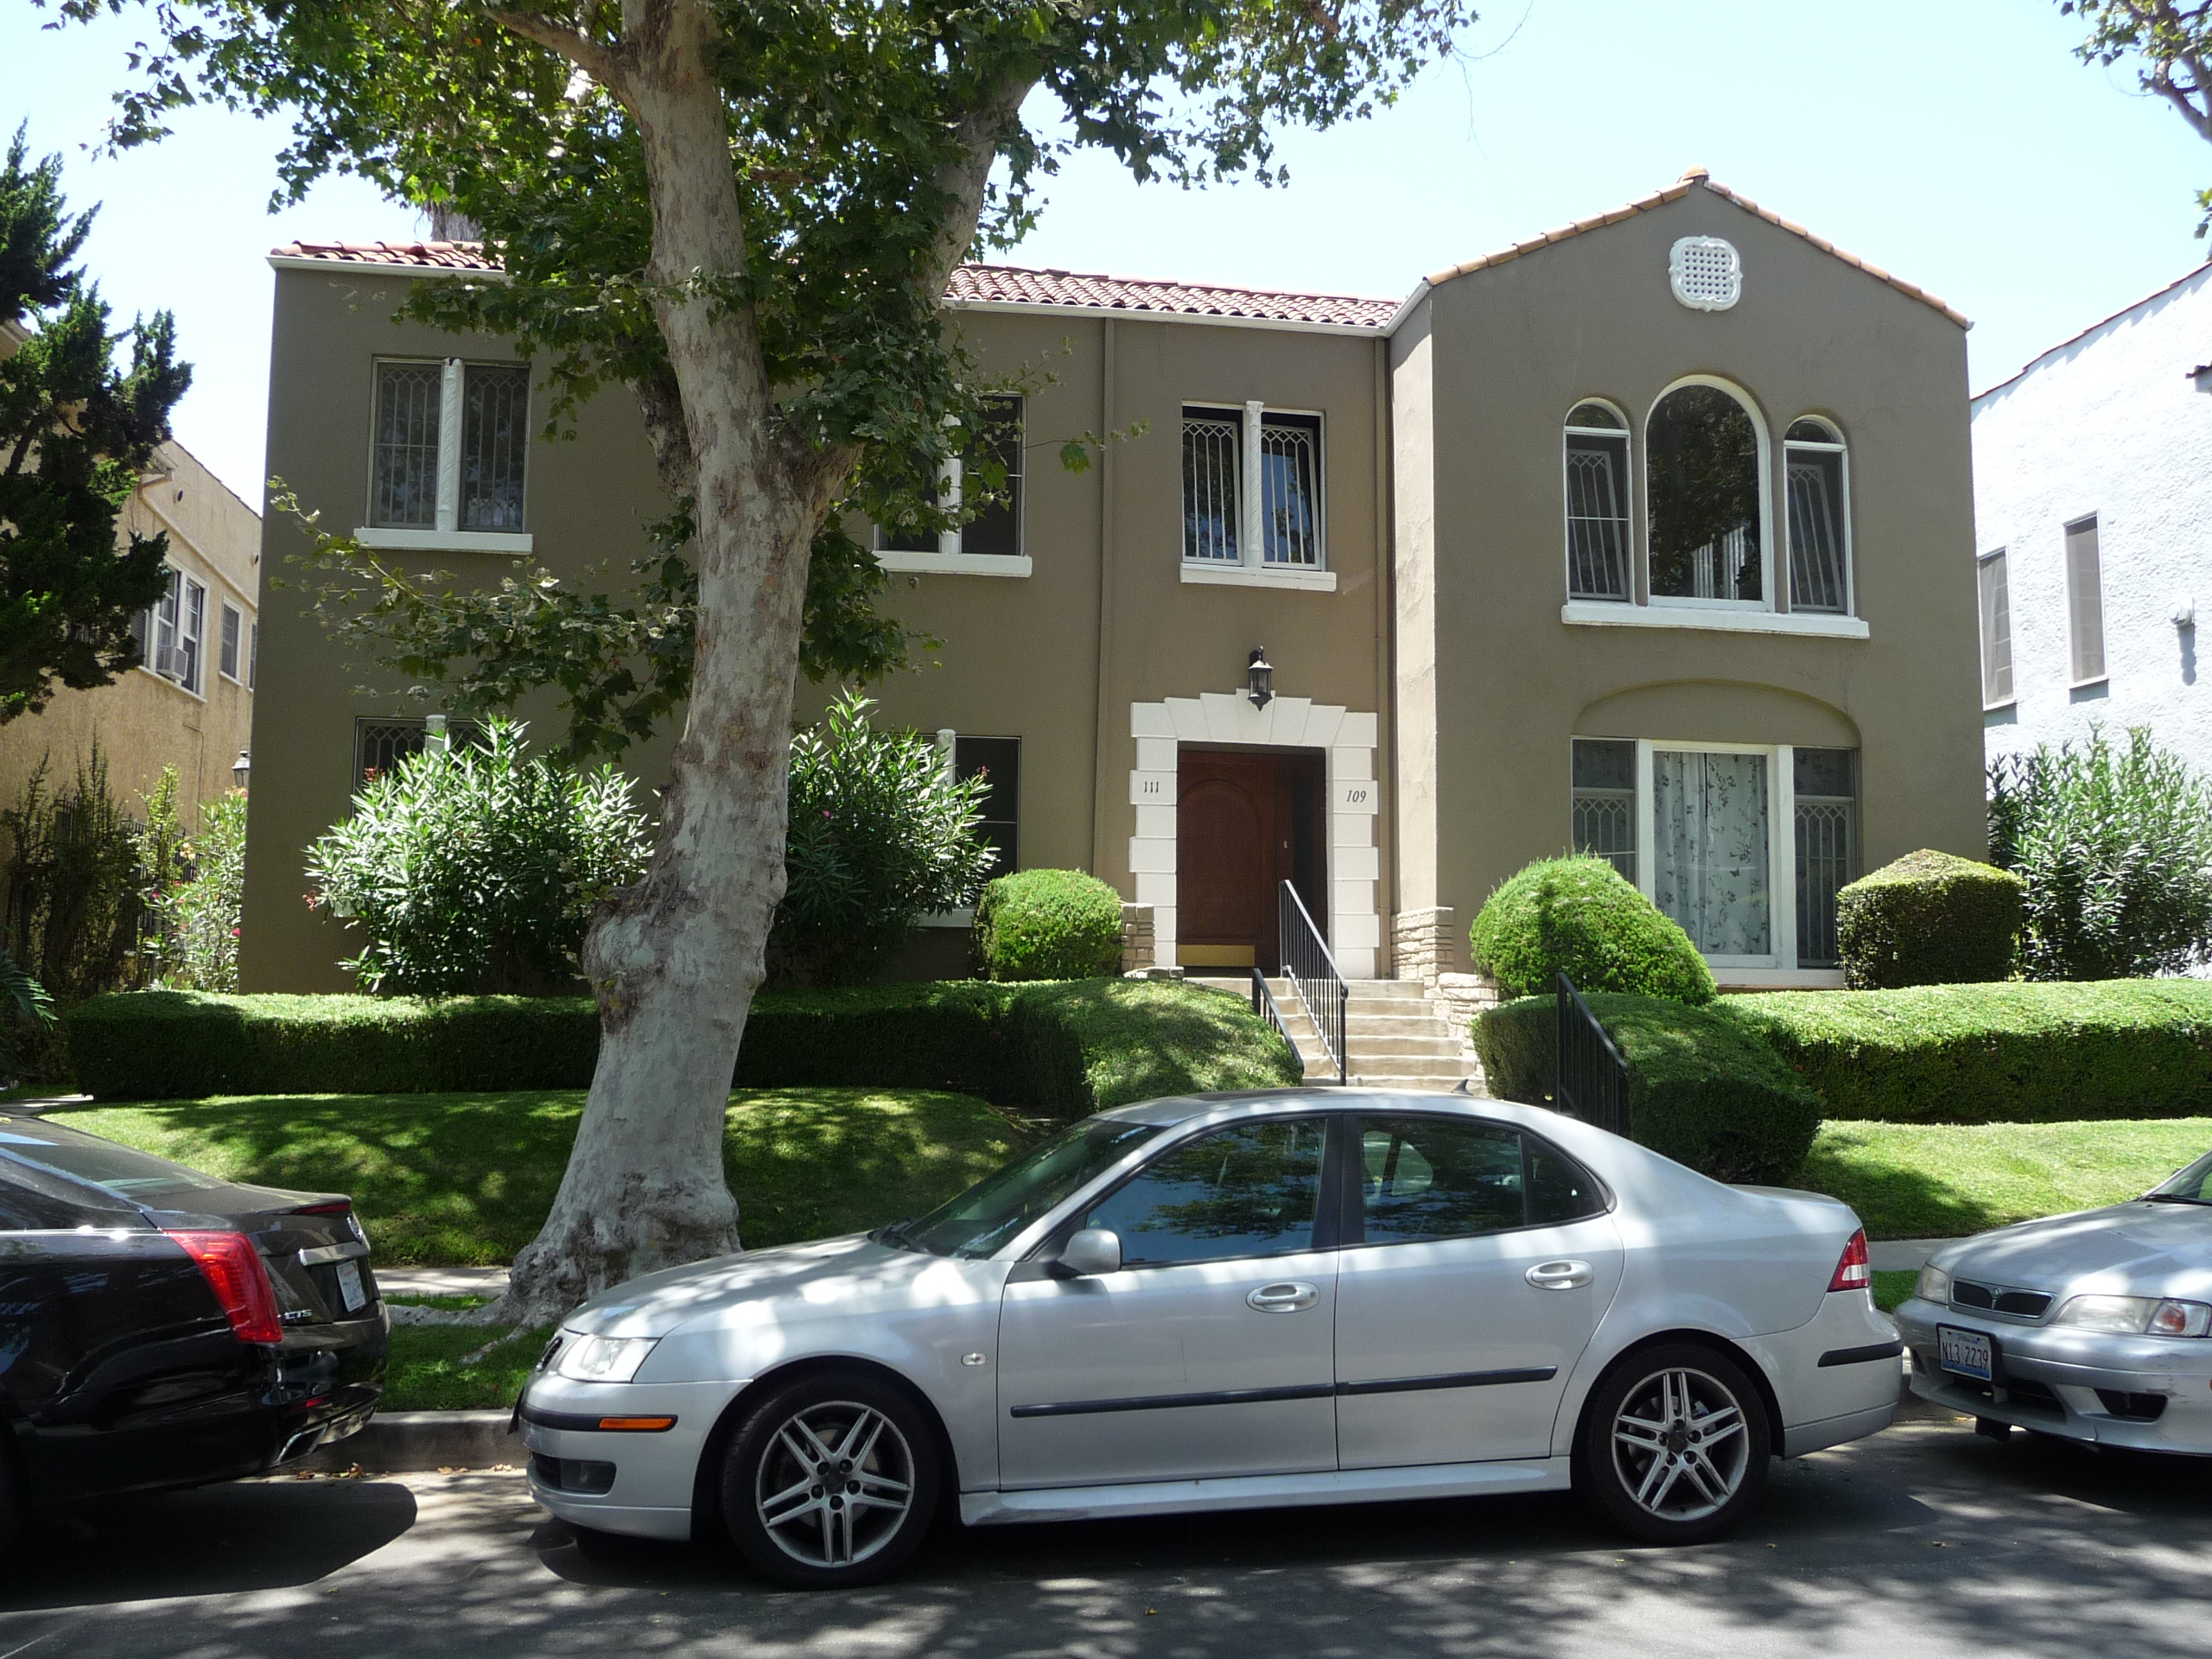 111 S SYCAMORE AVE - PHOTO